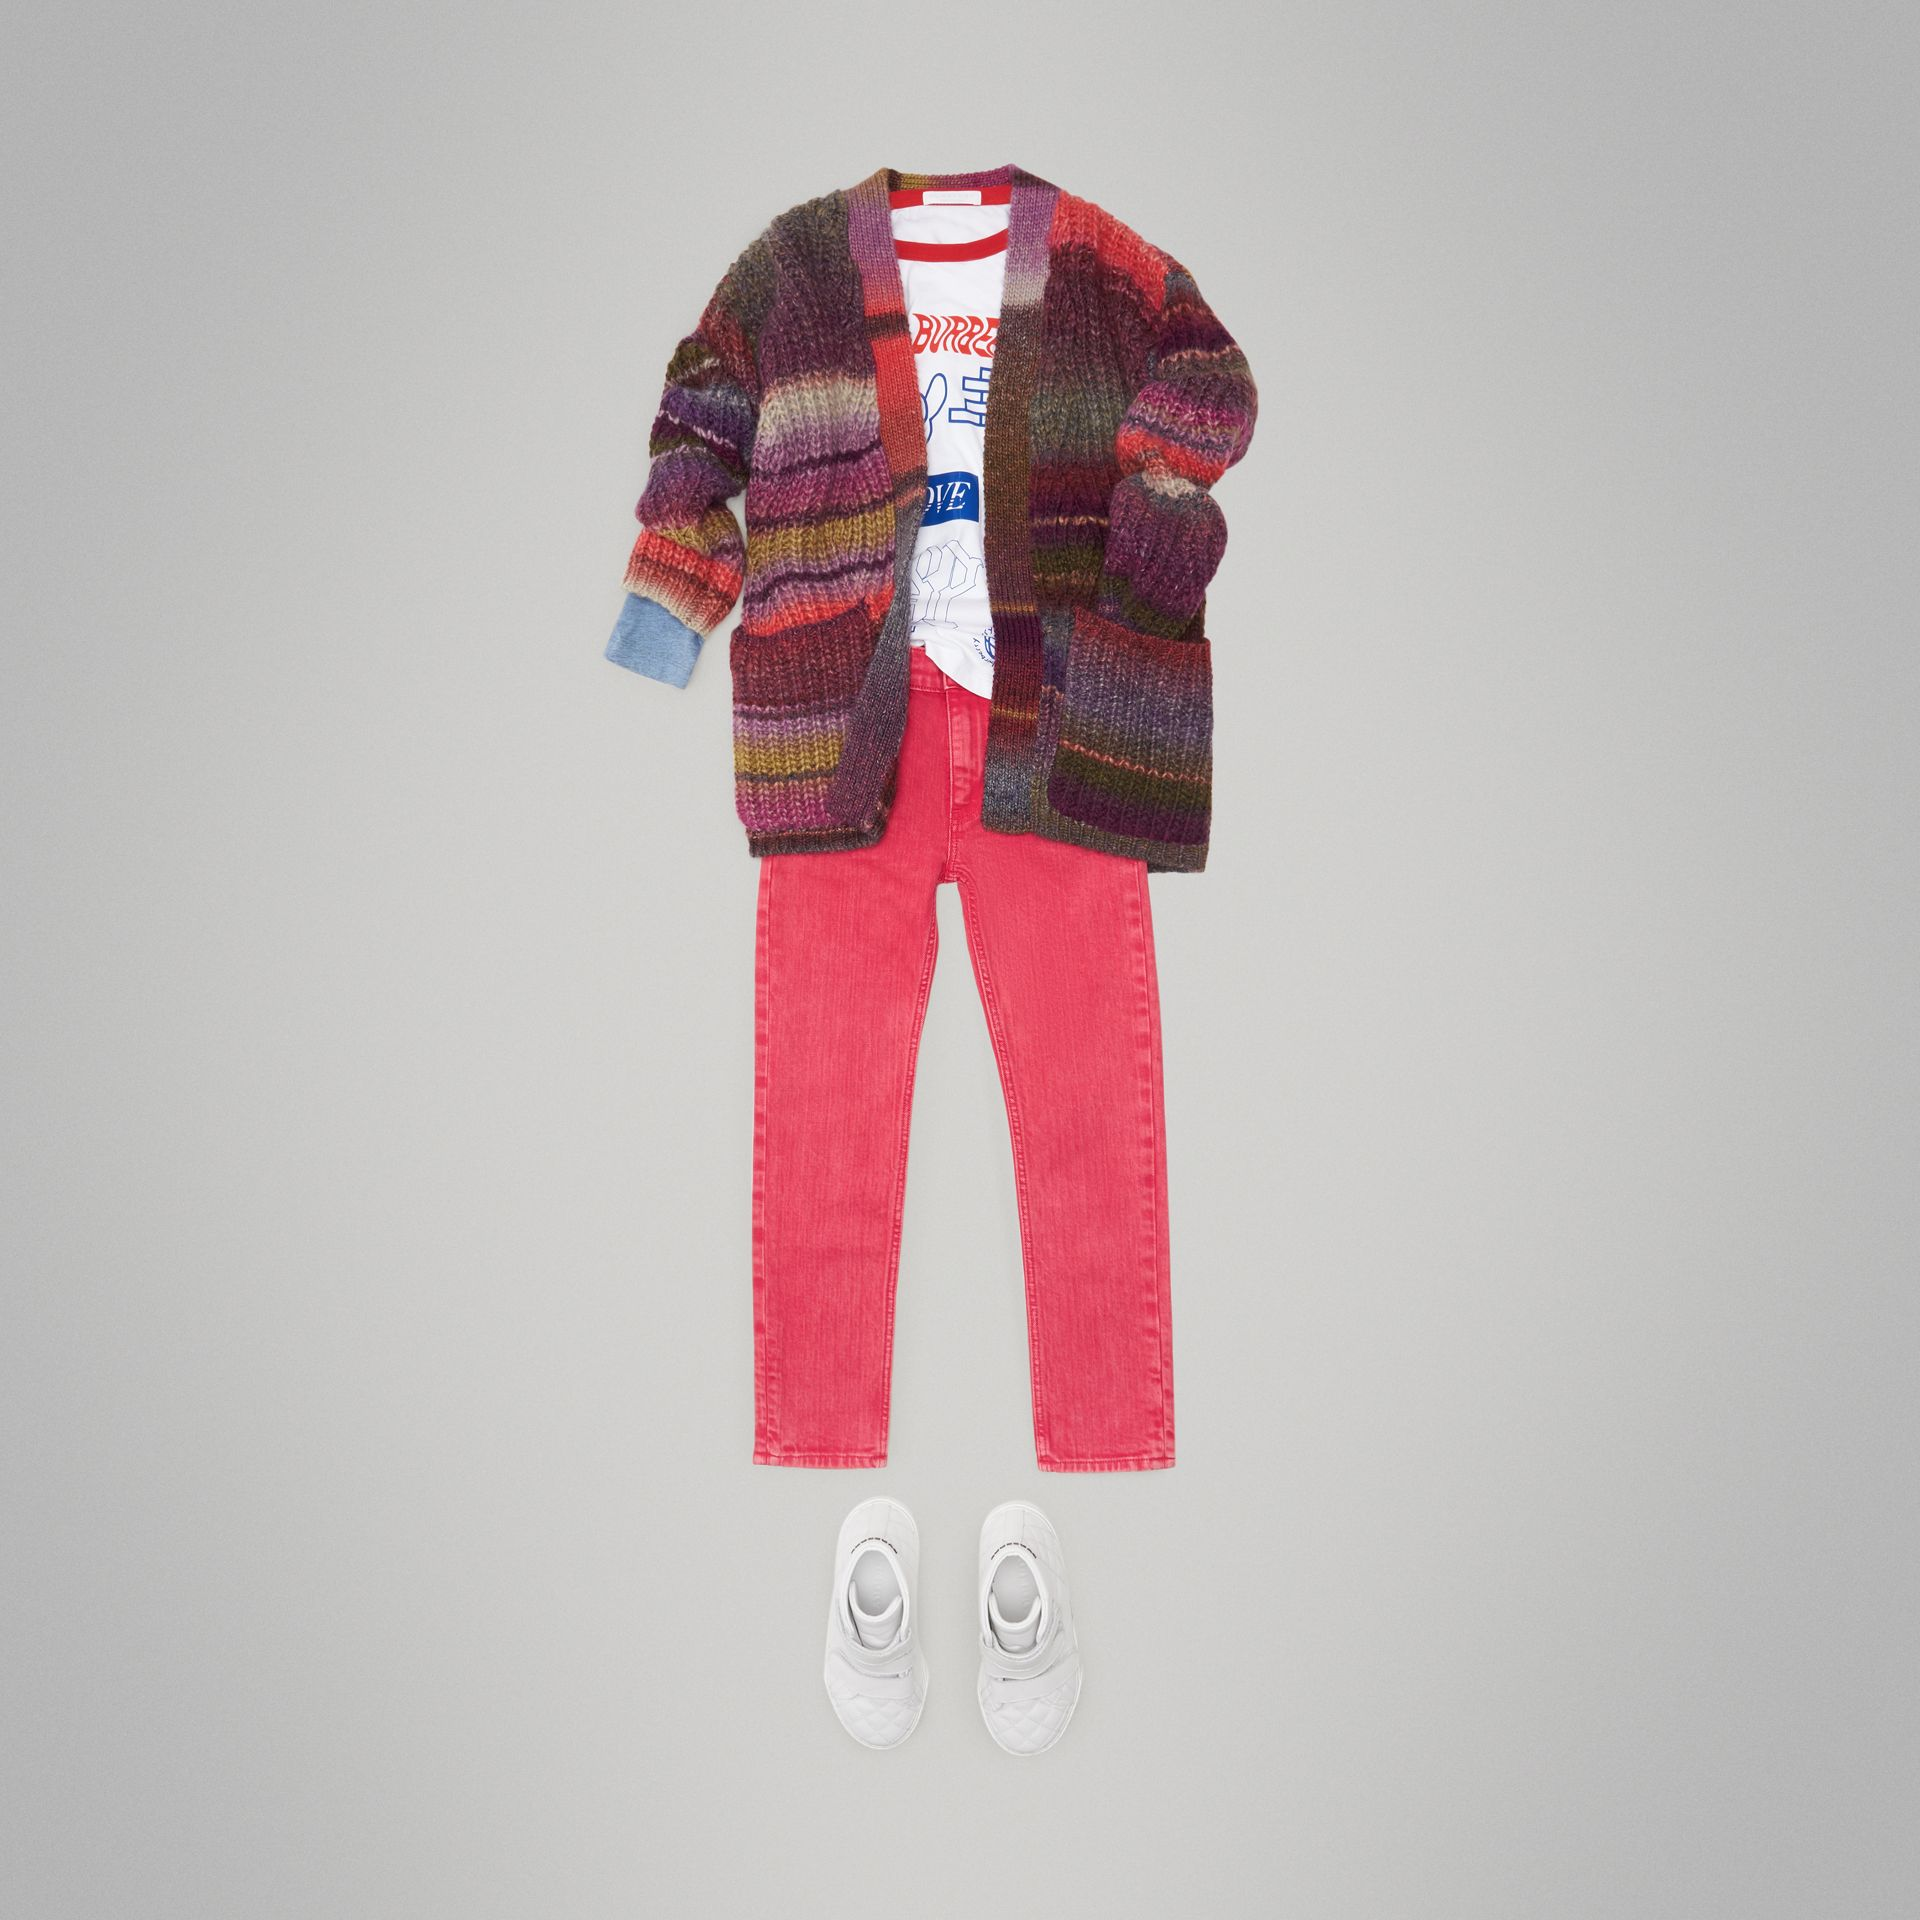 Rib Knit Wool Blend Cardigan in Multicolour | Burberry - gallery image 2